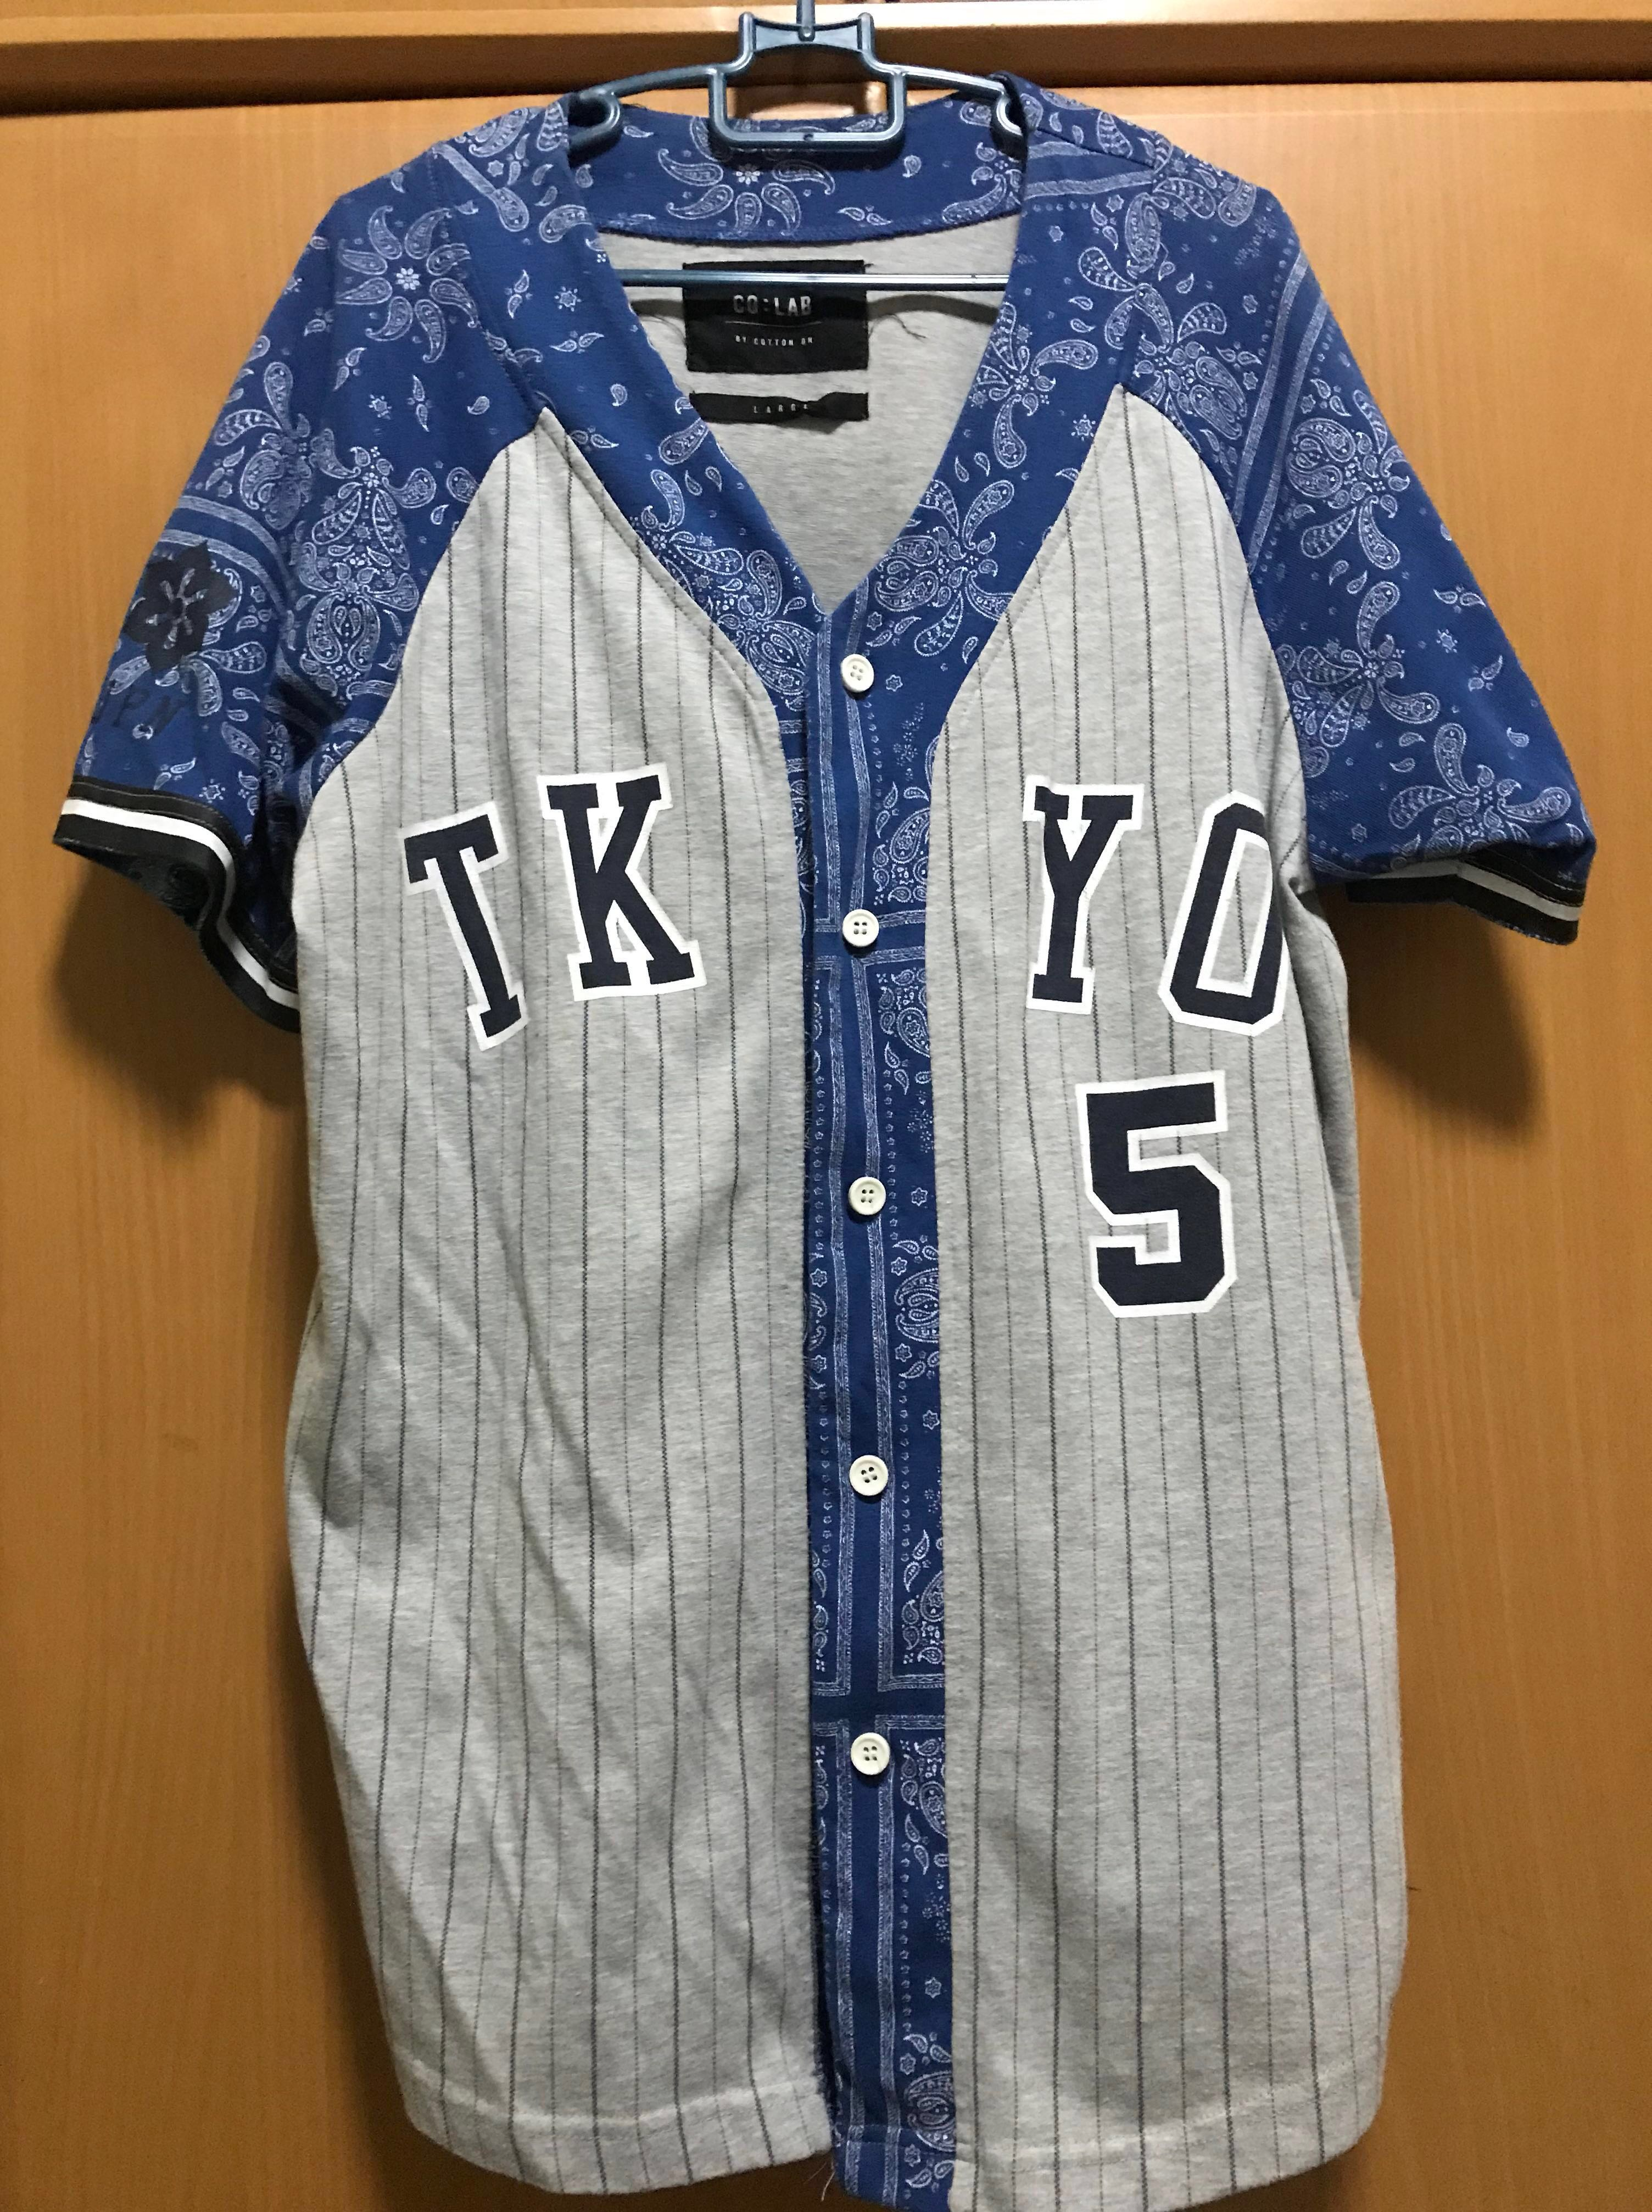 best service cf2f2 9d597 CO:LAB by Cotton On (Tokyo 5 Baseball Jersey)